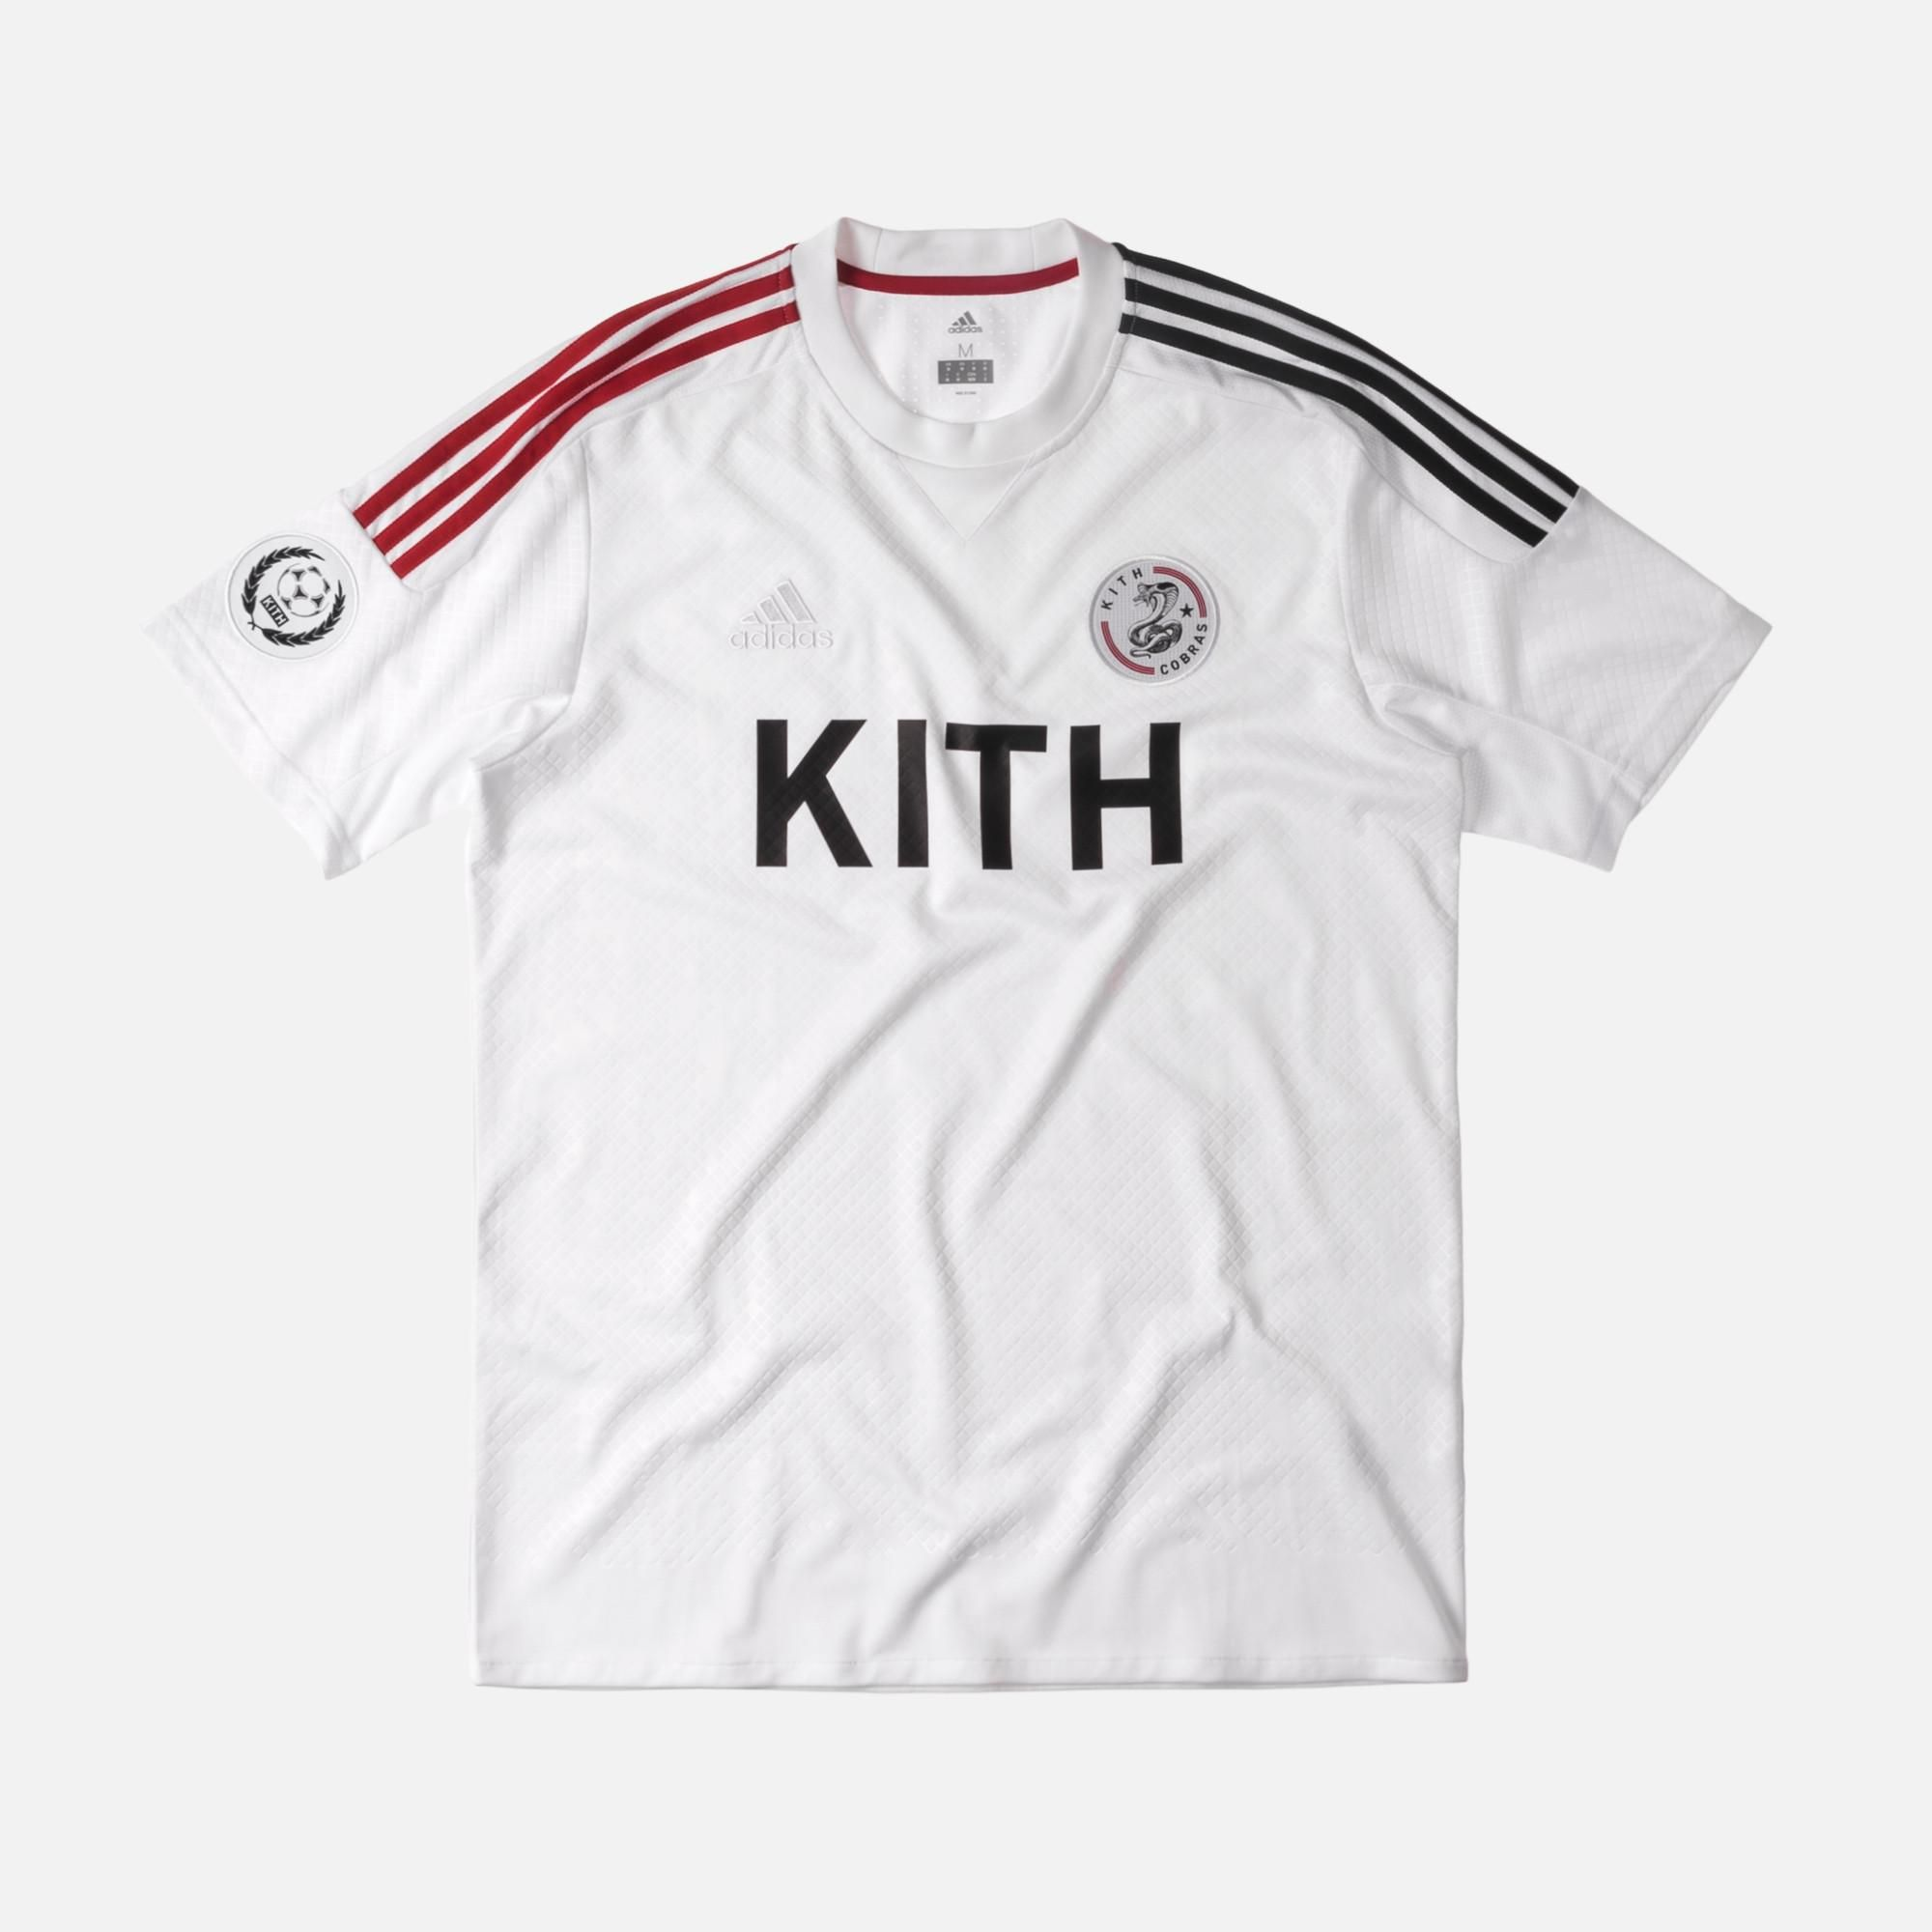 f9056d30b68 Kith x adidas Soccer Game Jersey - Cobras Home